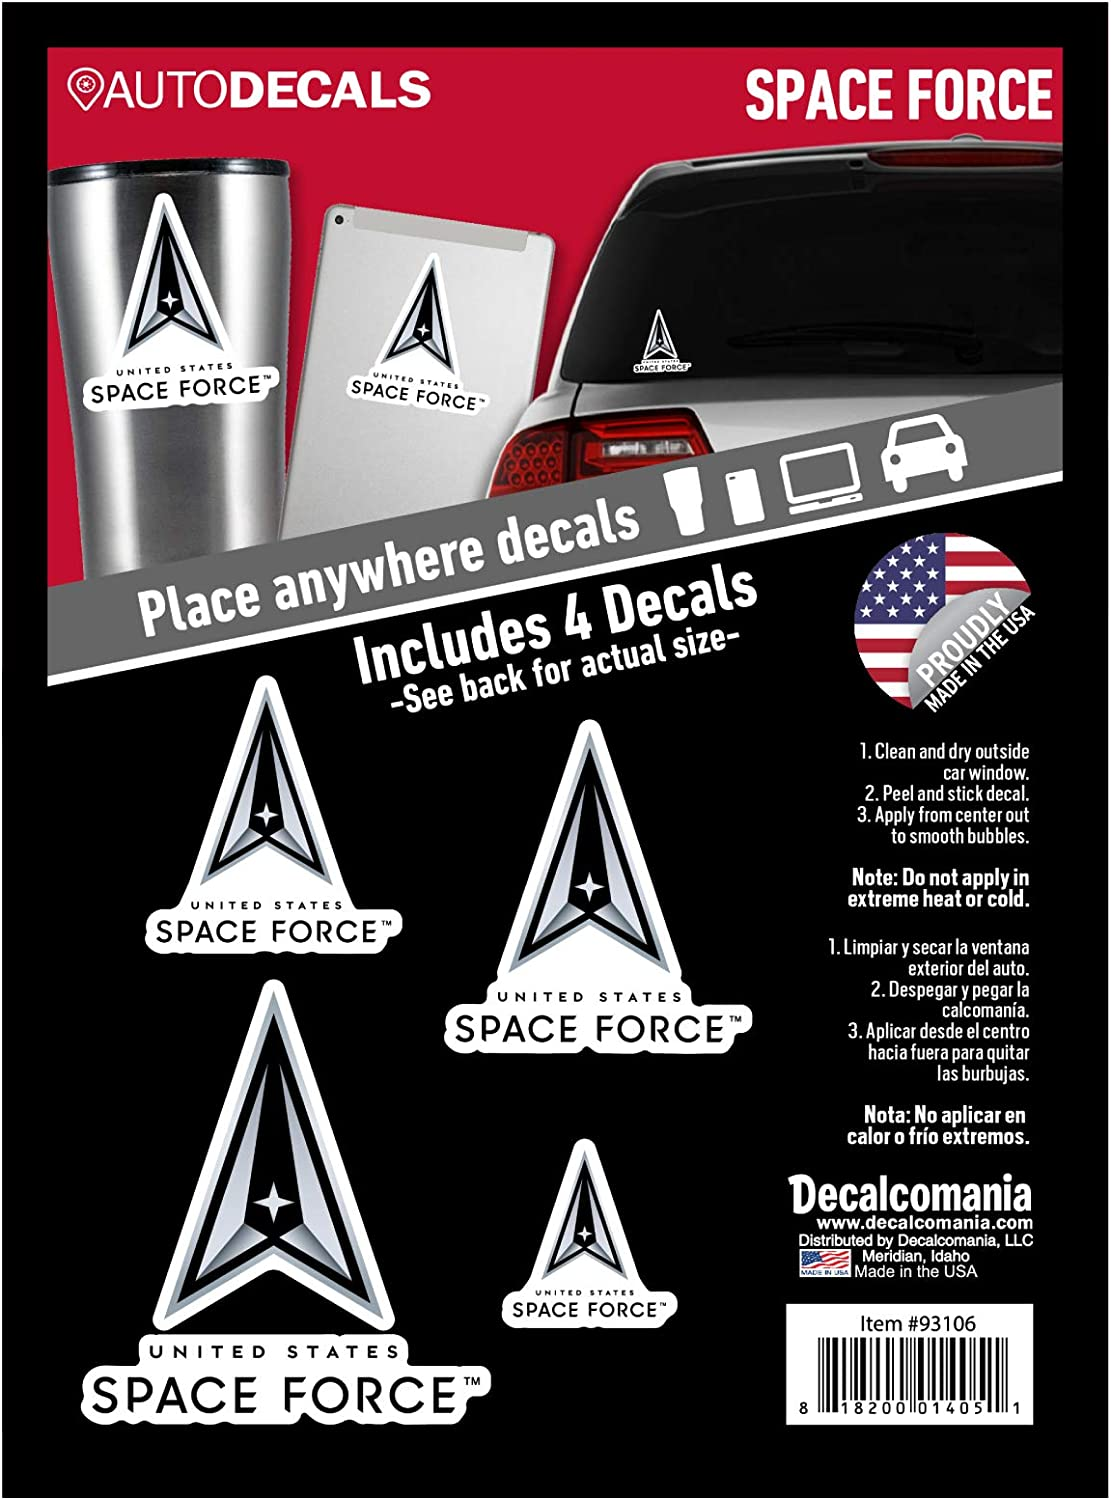 Officially Licensed US Space Force Decals - 4 Piece Space Force Sticker for Truck or Car Windows, Phones, Tablets & Laptops – Large Military Decals 2 to 5 Inches – Car Decals Military Collection